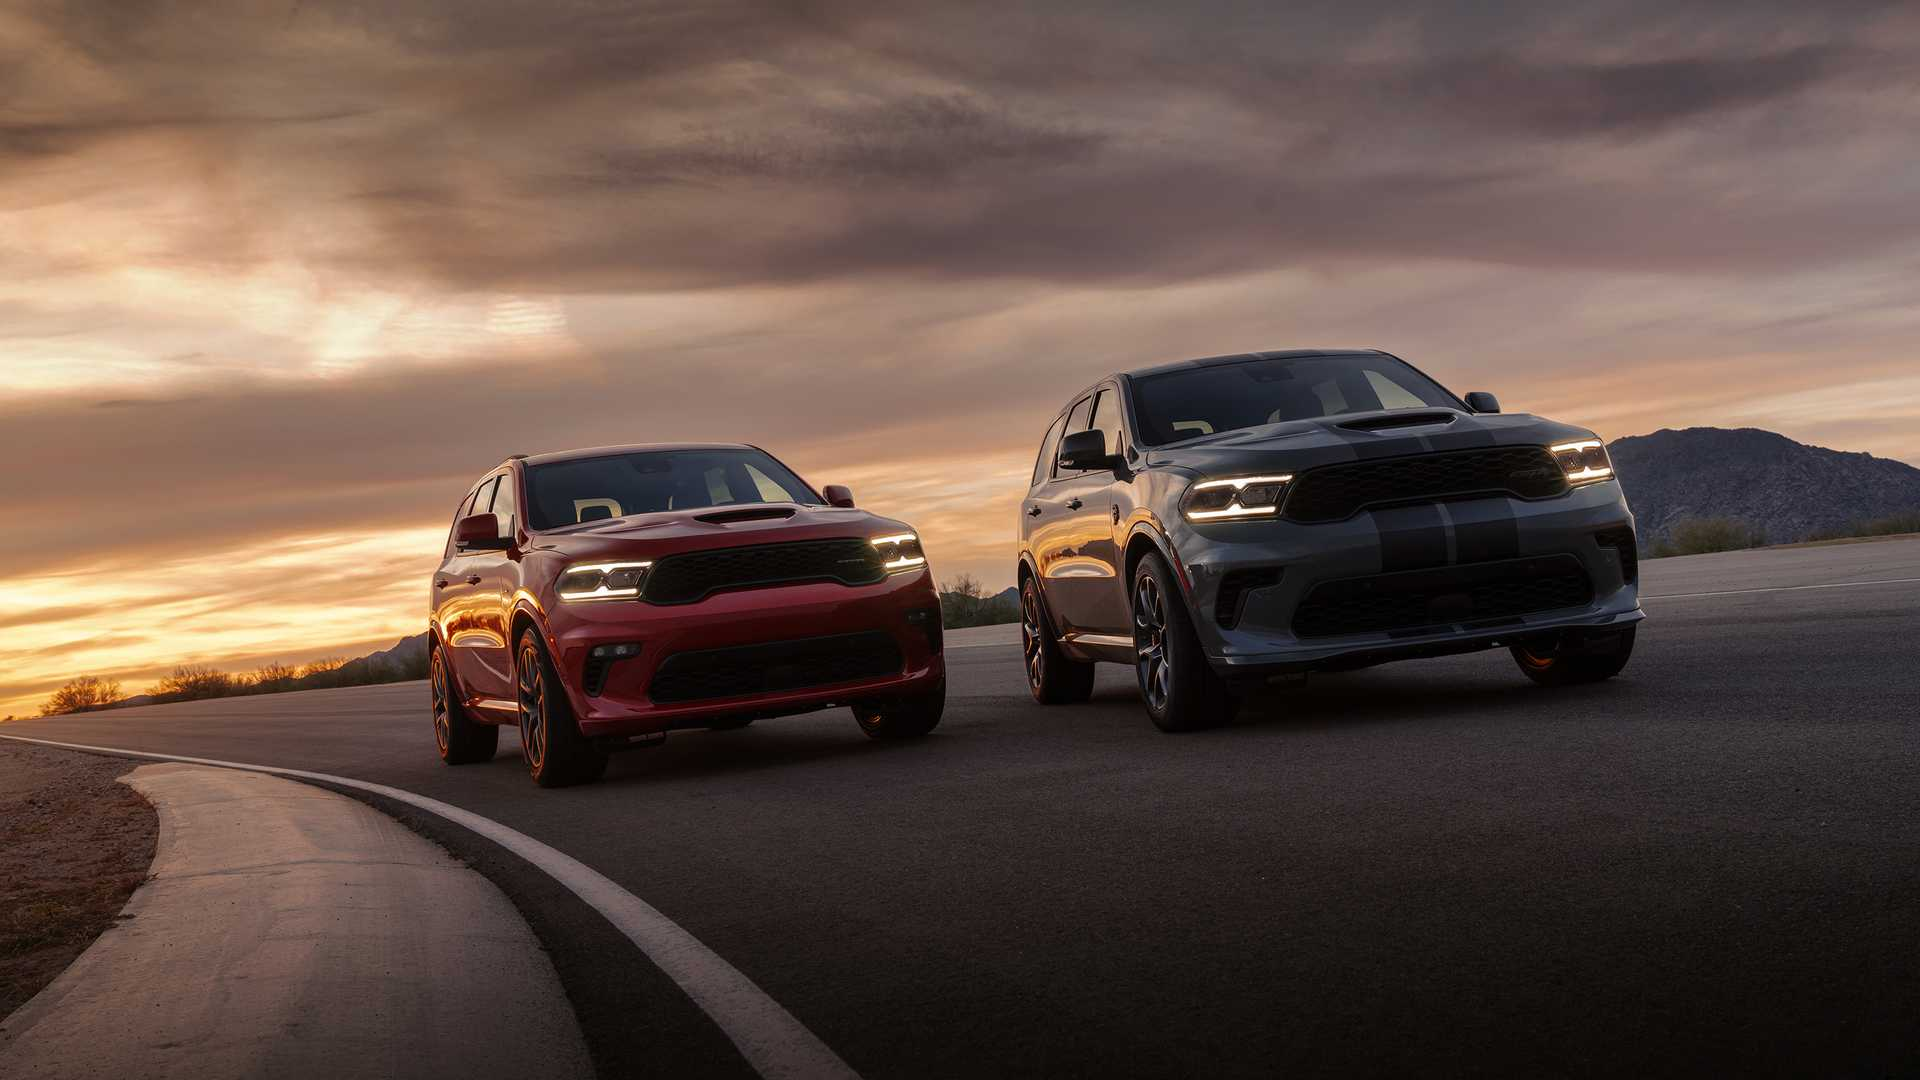 2021 Dodge Durango Srt Suv Price Review And Buying Guide Carindigo Com